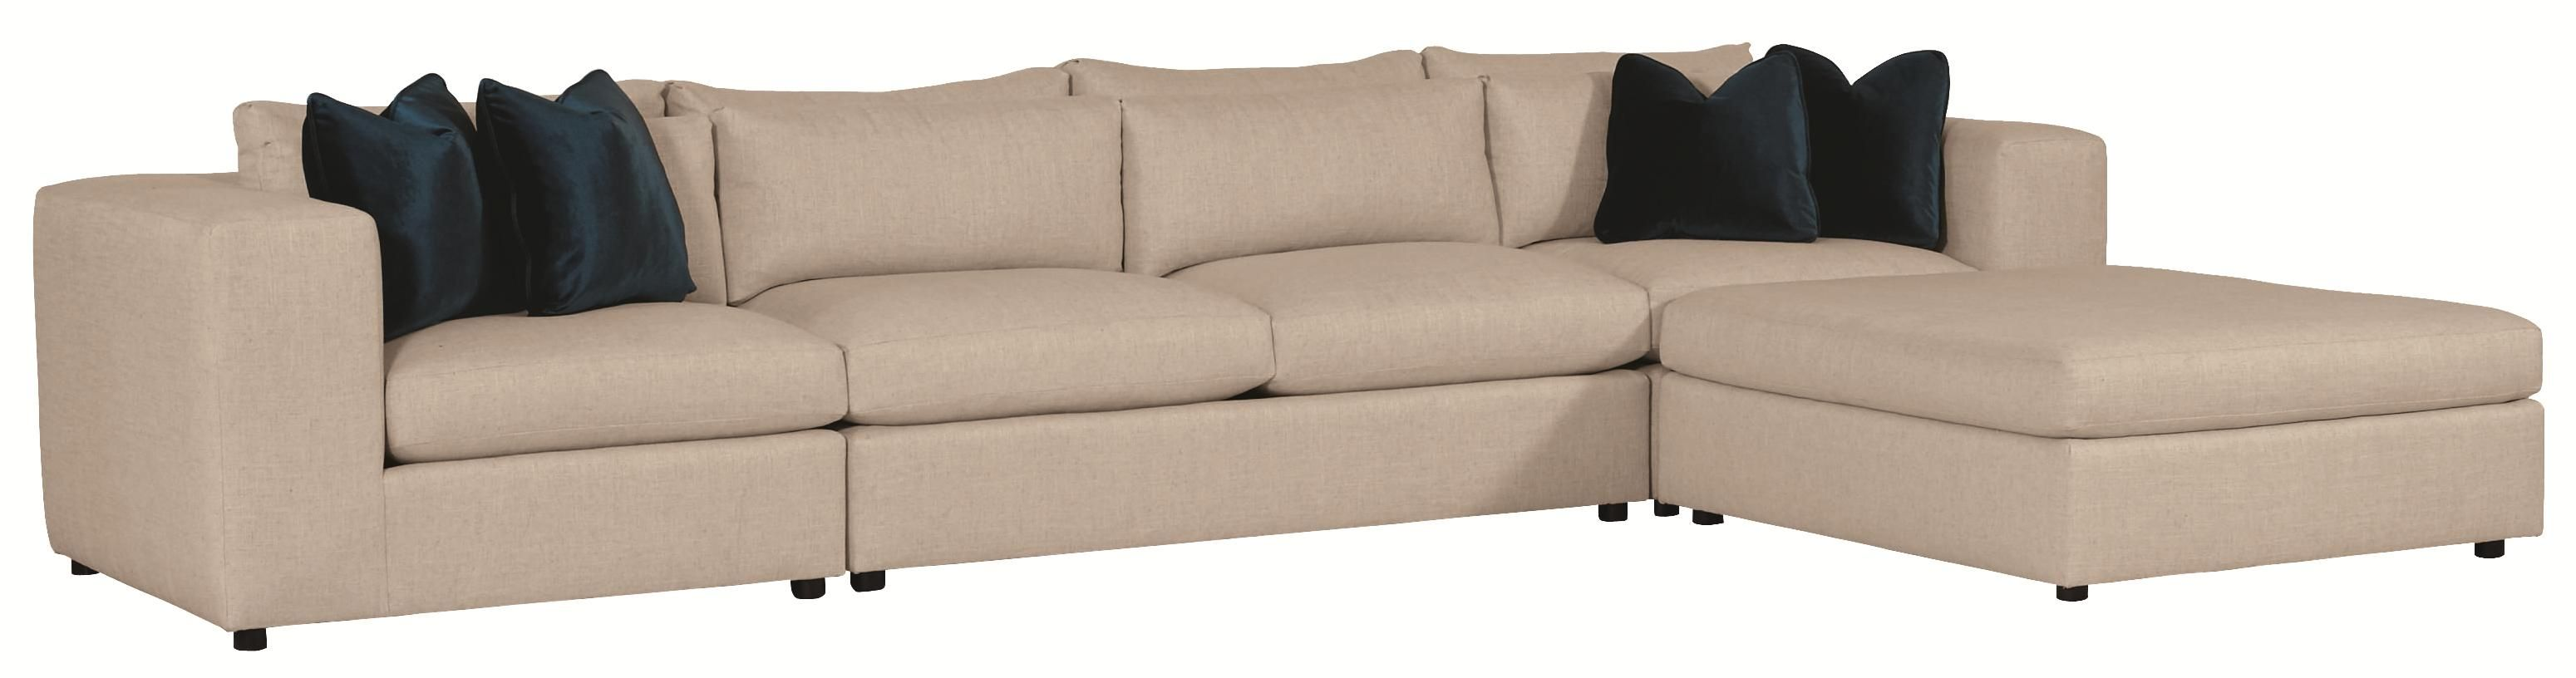 o Sectional Sofa by Bernhardt Living Room